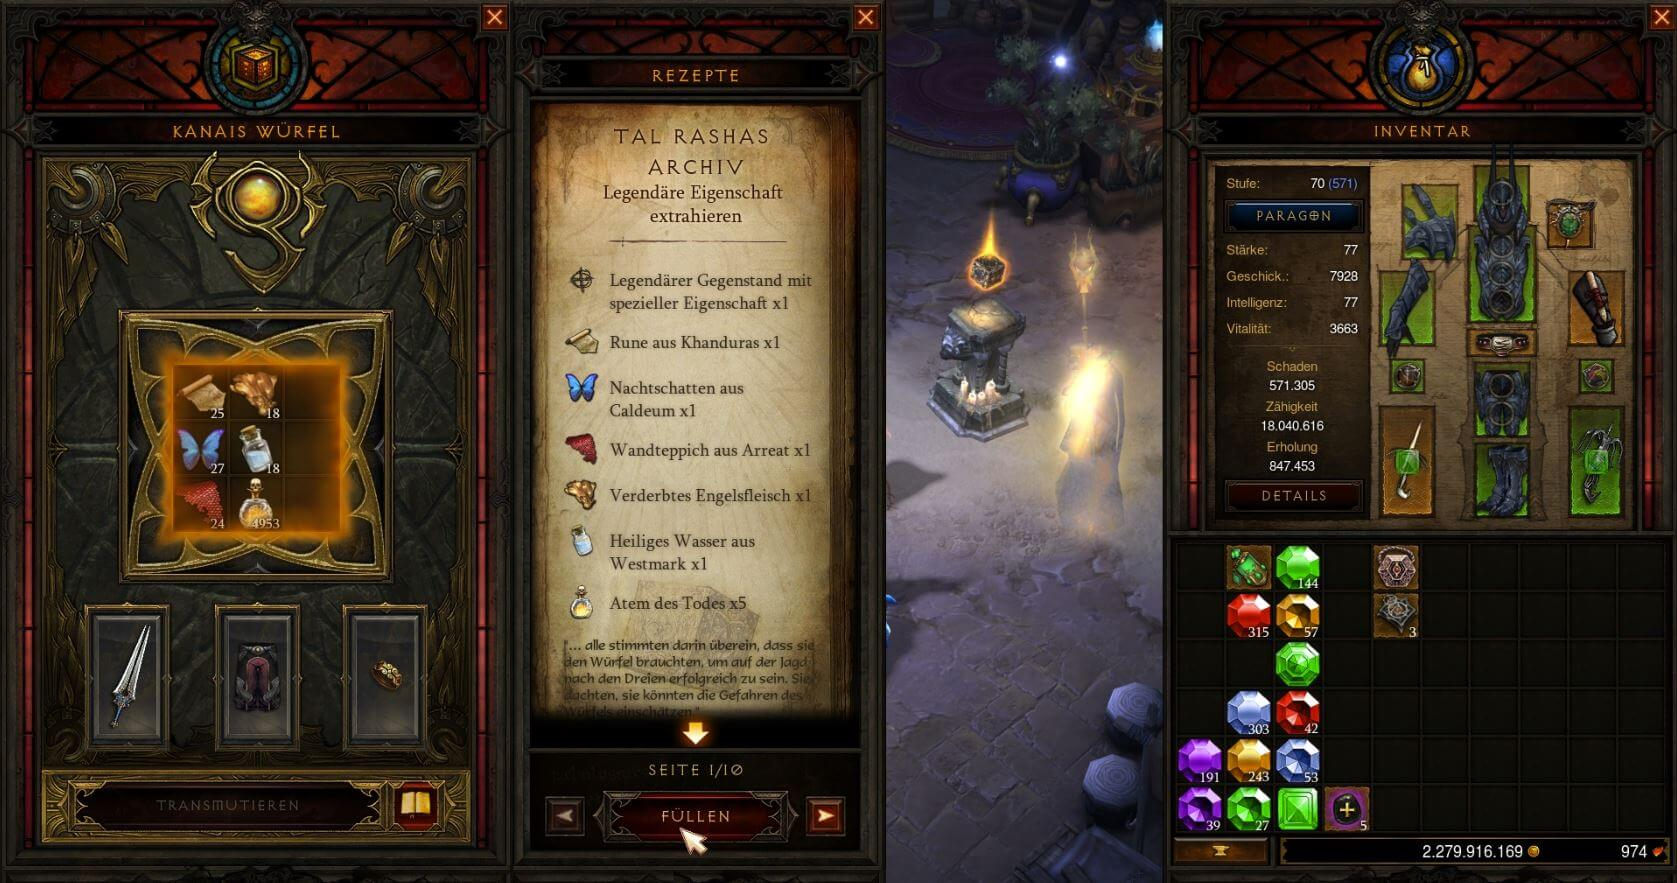 diablo-3-patch-2-5-0-guide-kanais-wuerfel-fuellen_news